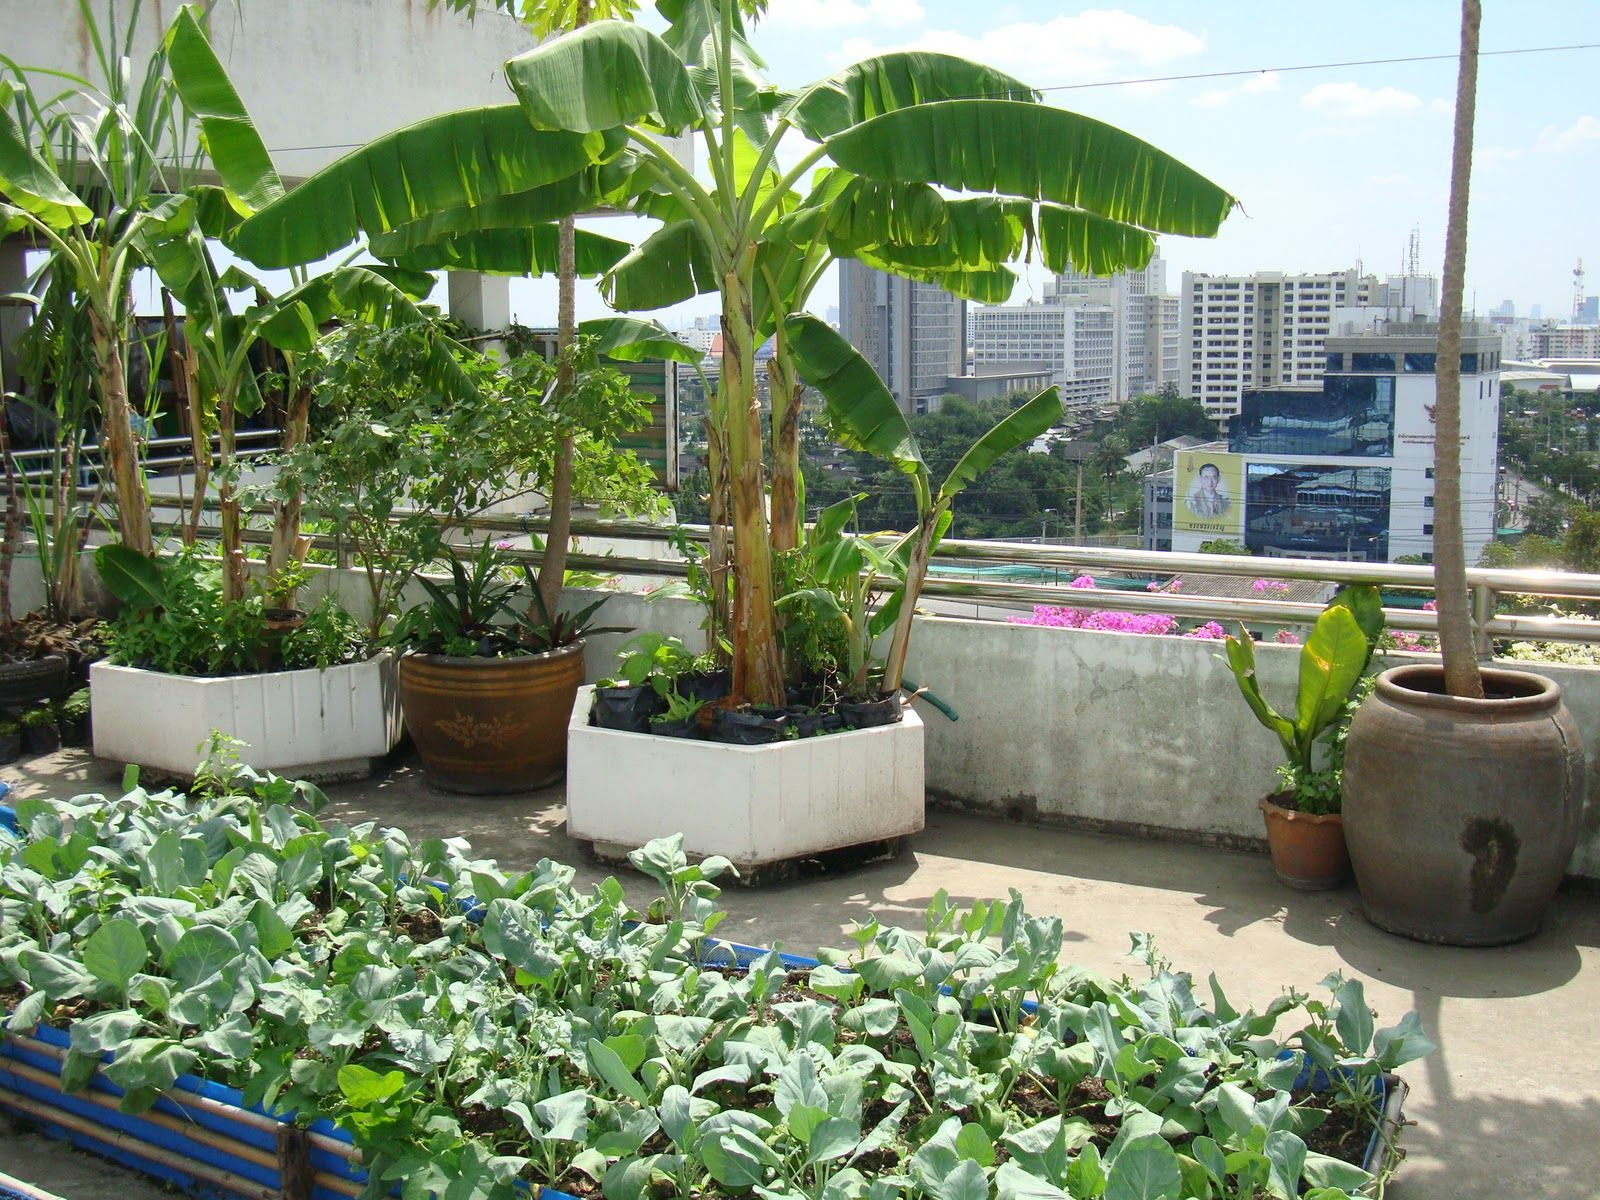 Rooftop garden creative landscape garden serenity for House and garden kitchen designs